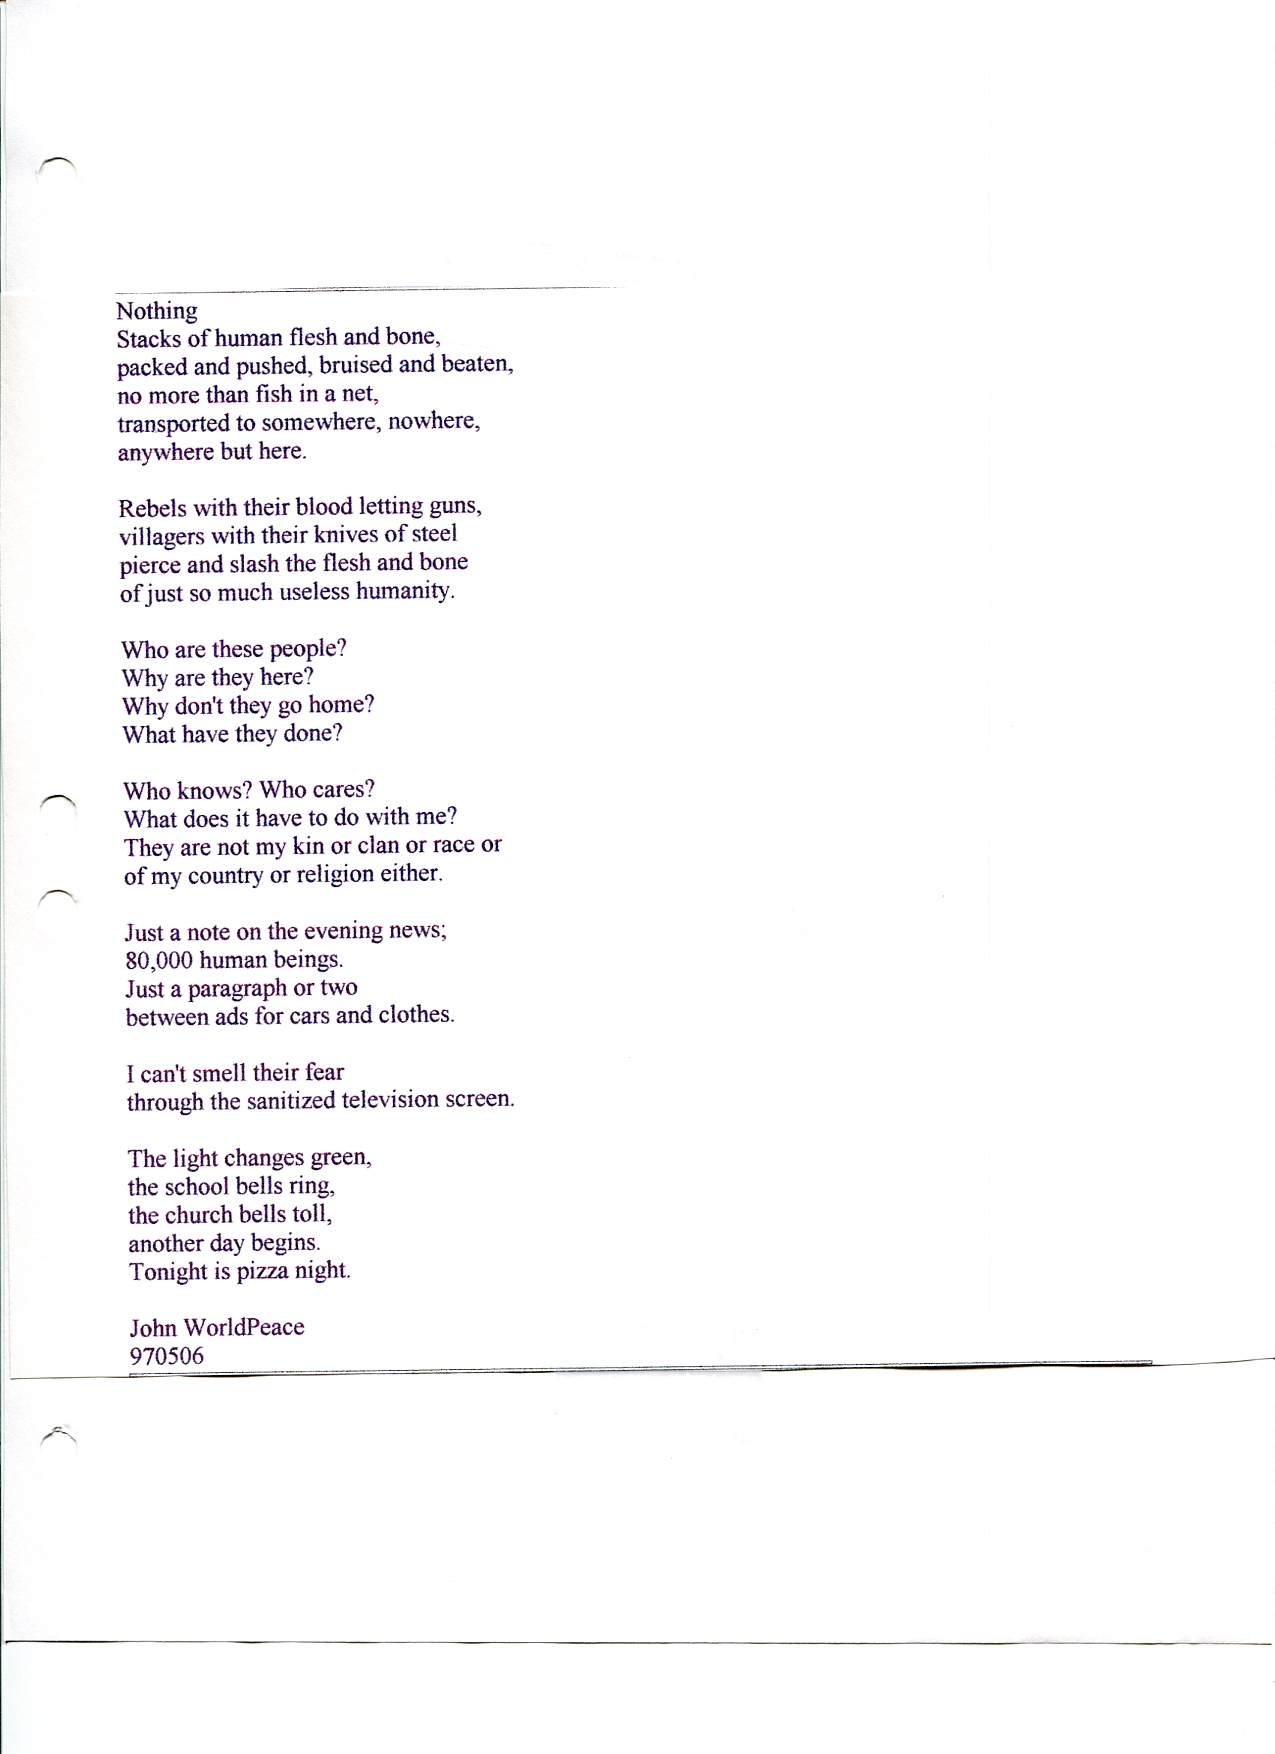 John WorldPeace Poems 1997 | World Peace Poems